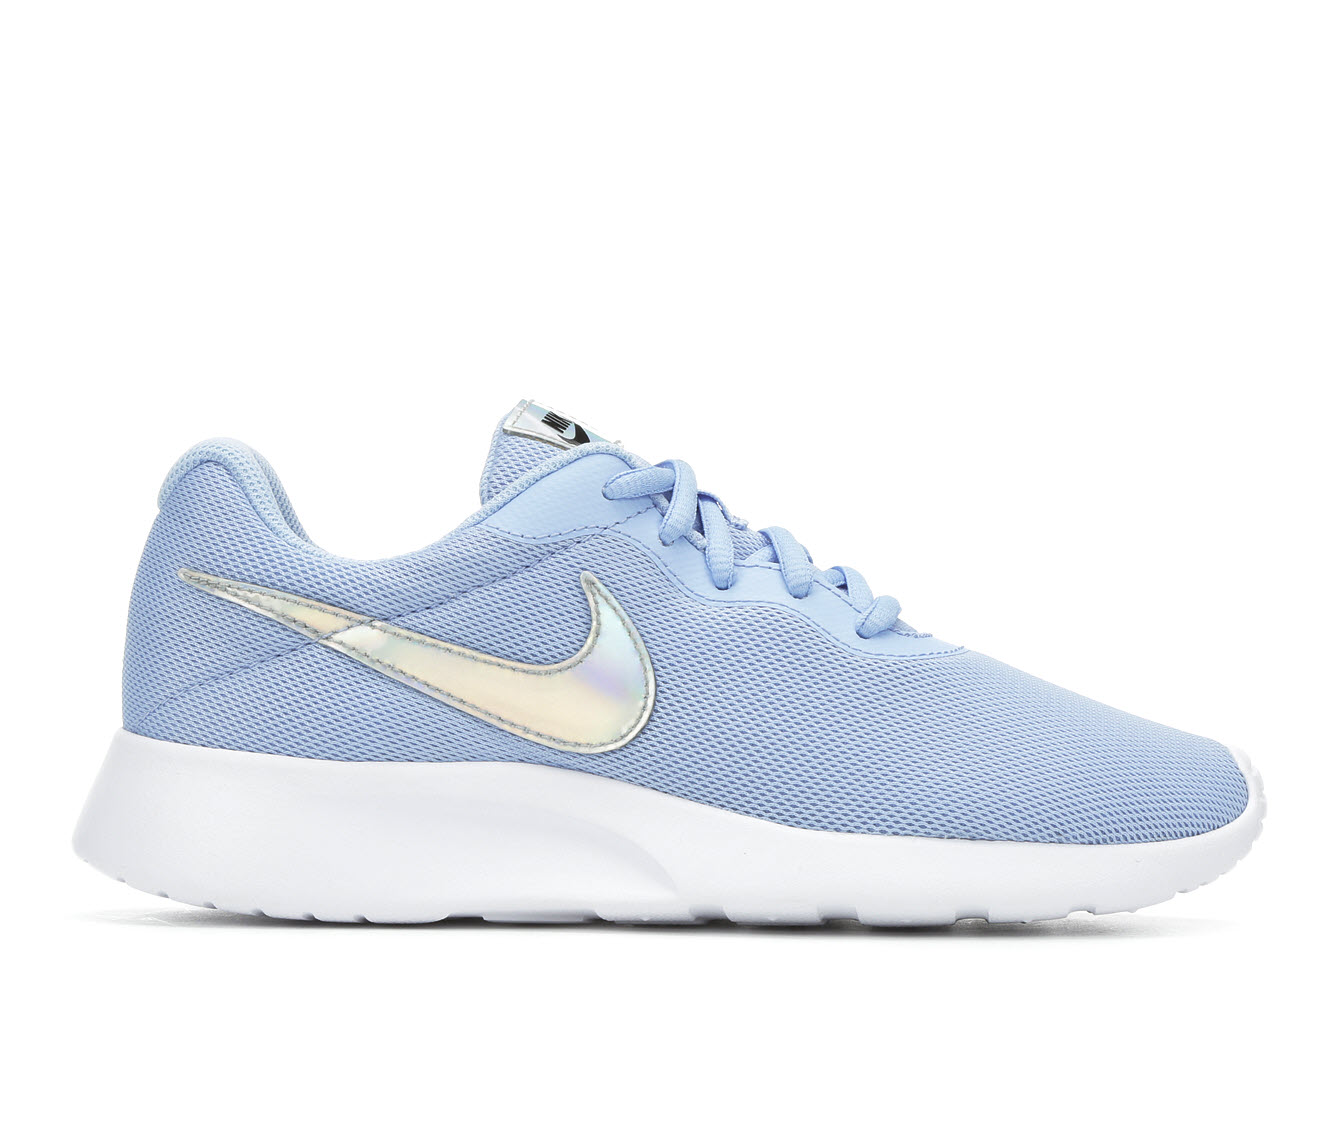 Nike Tanjun Women's Athletic Shoe (Silver)